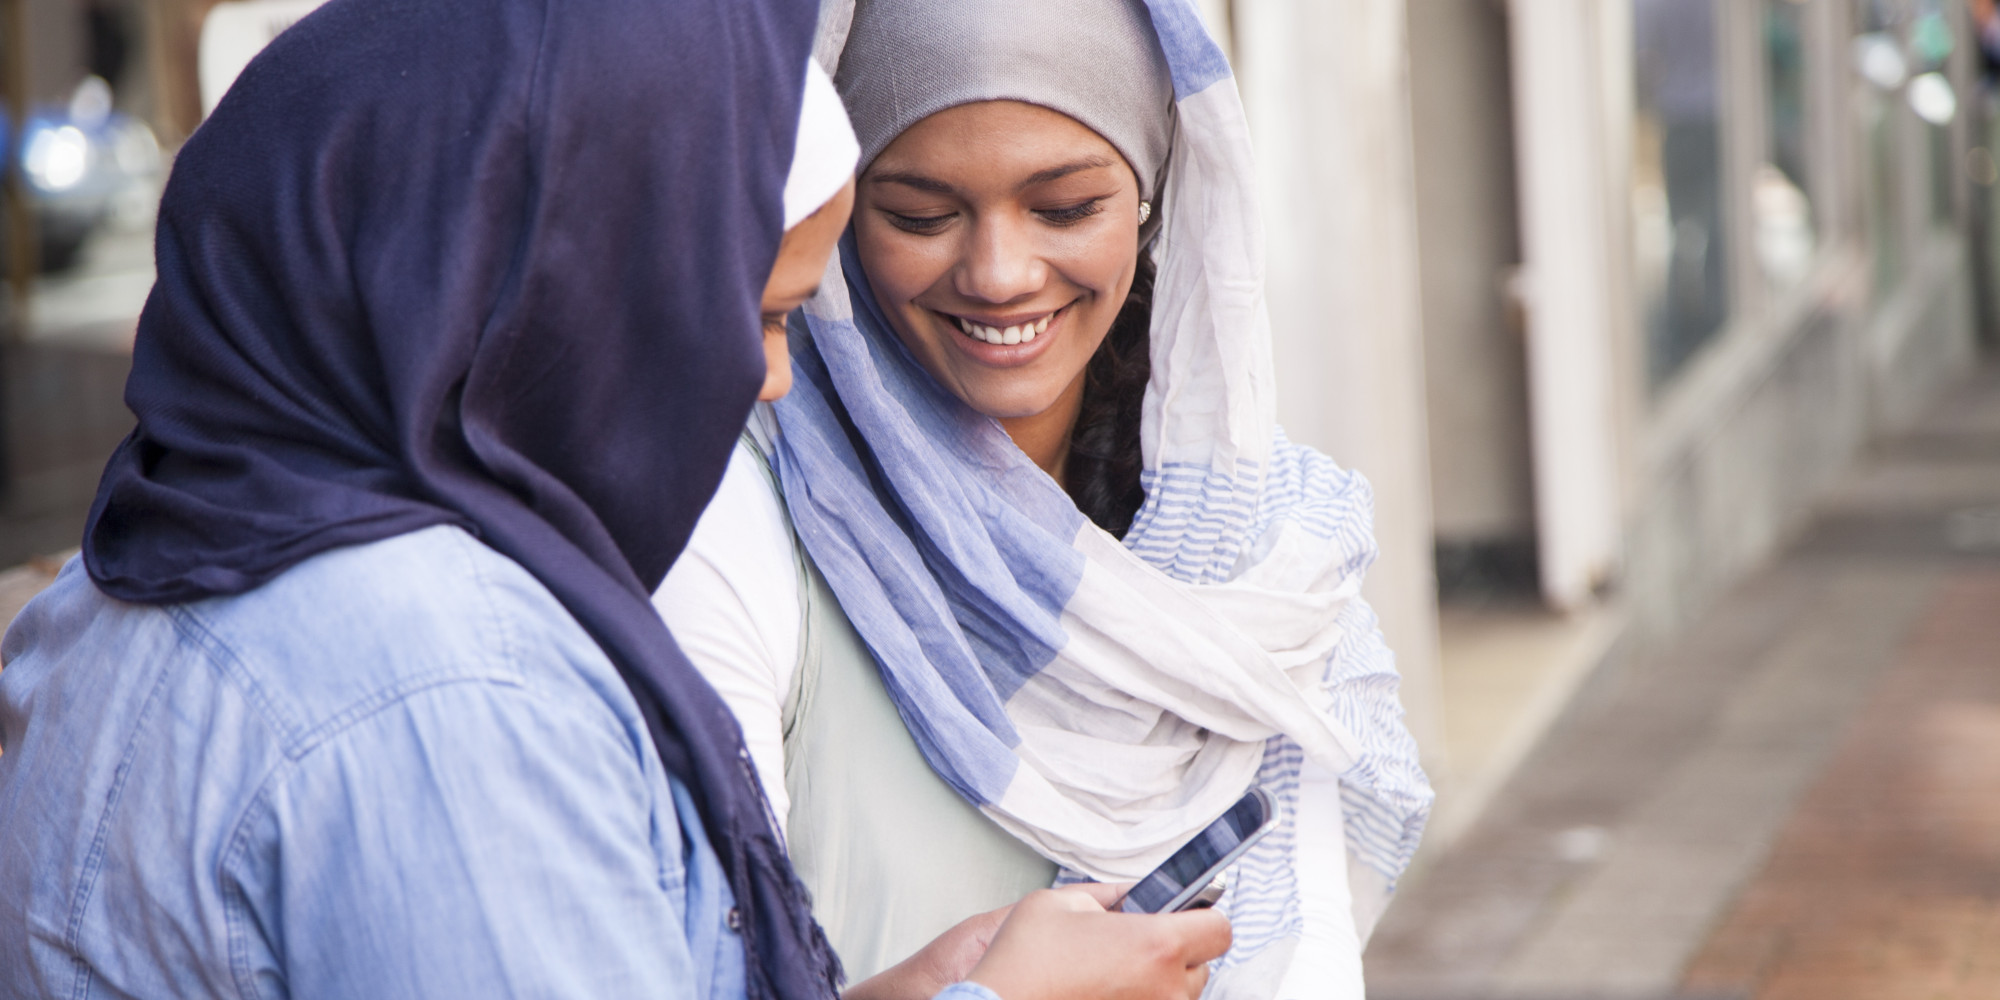 norton muslim girl personals Want to date a muslim girl and do not know how to start check our top tips of how to date a muslim woman.